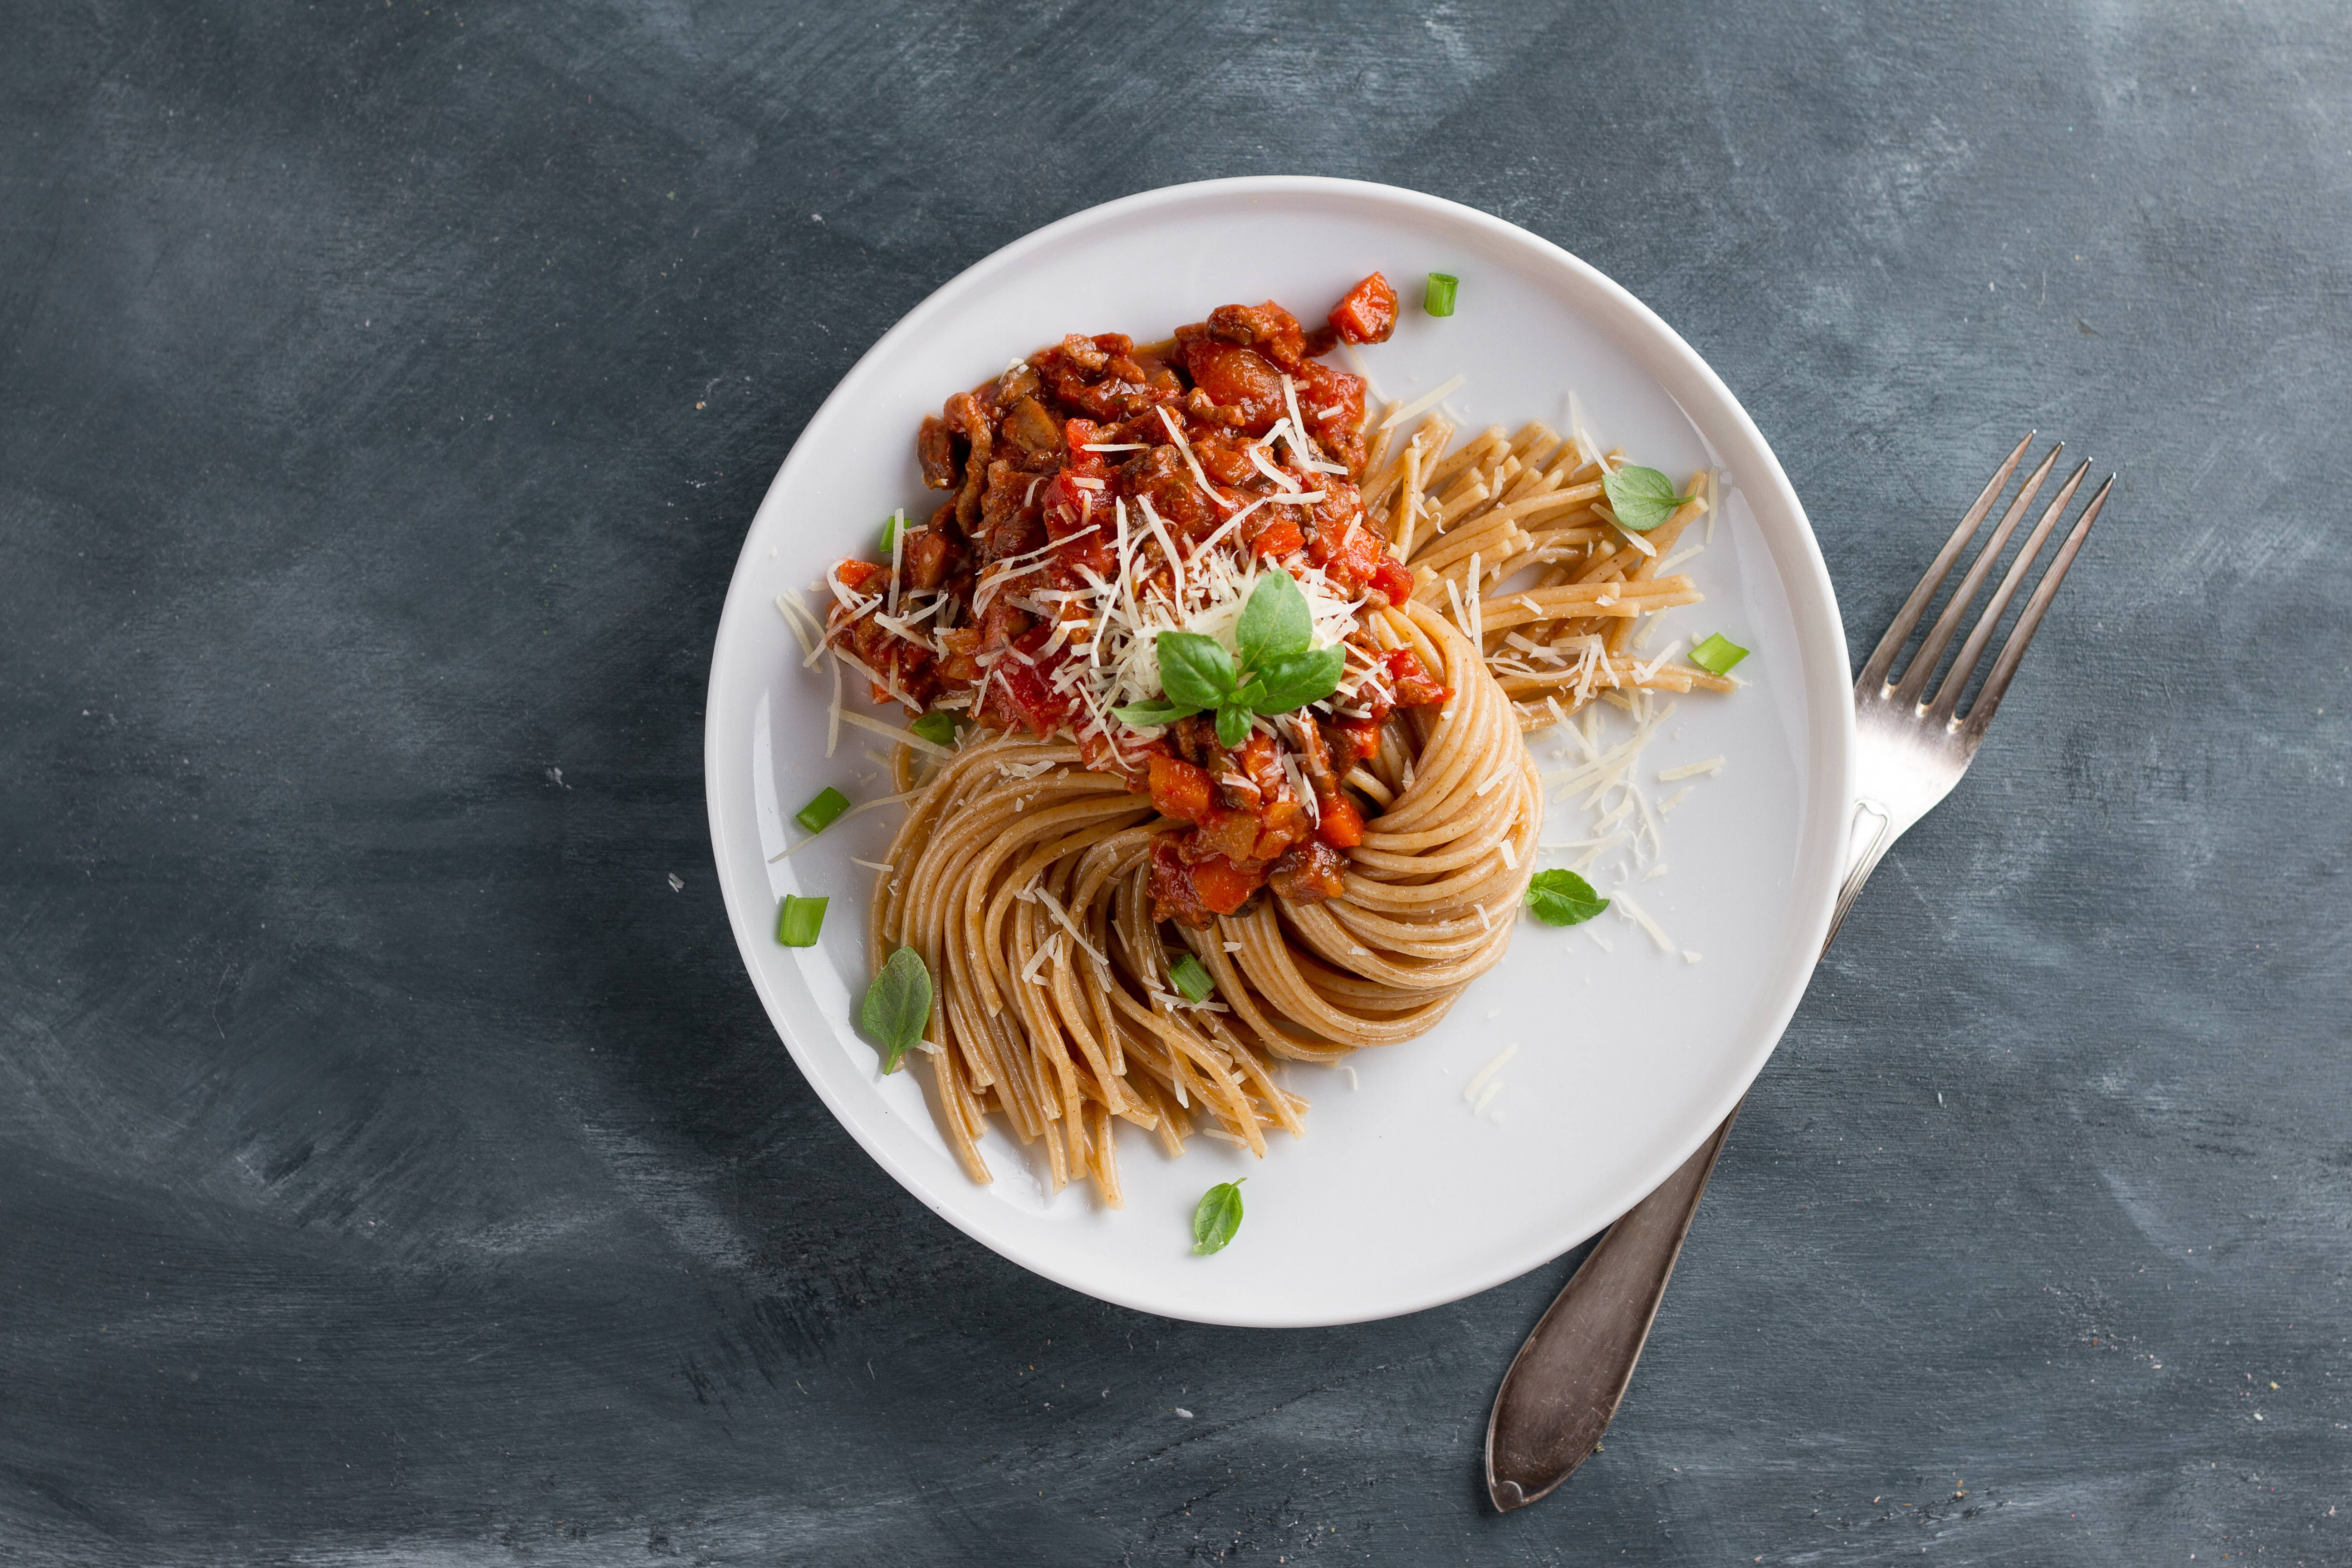 recipe image Spaghetti Bolognese with sundried tomatoes and parmesan